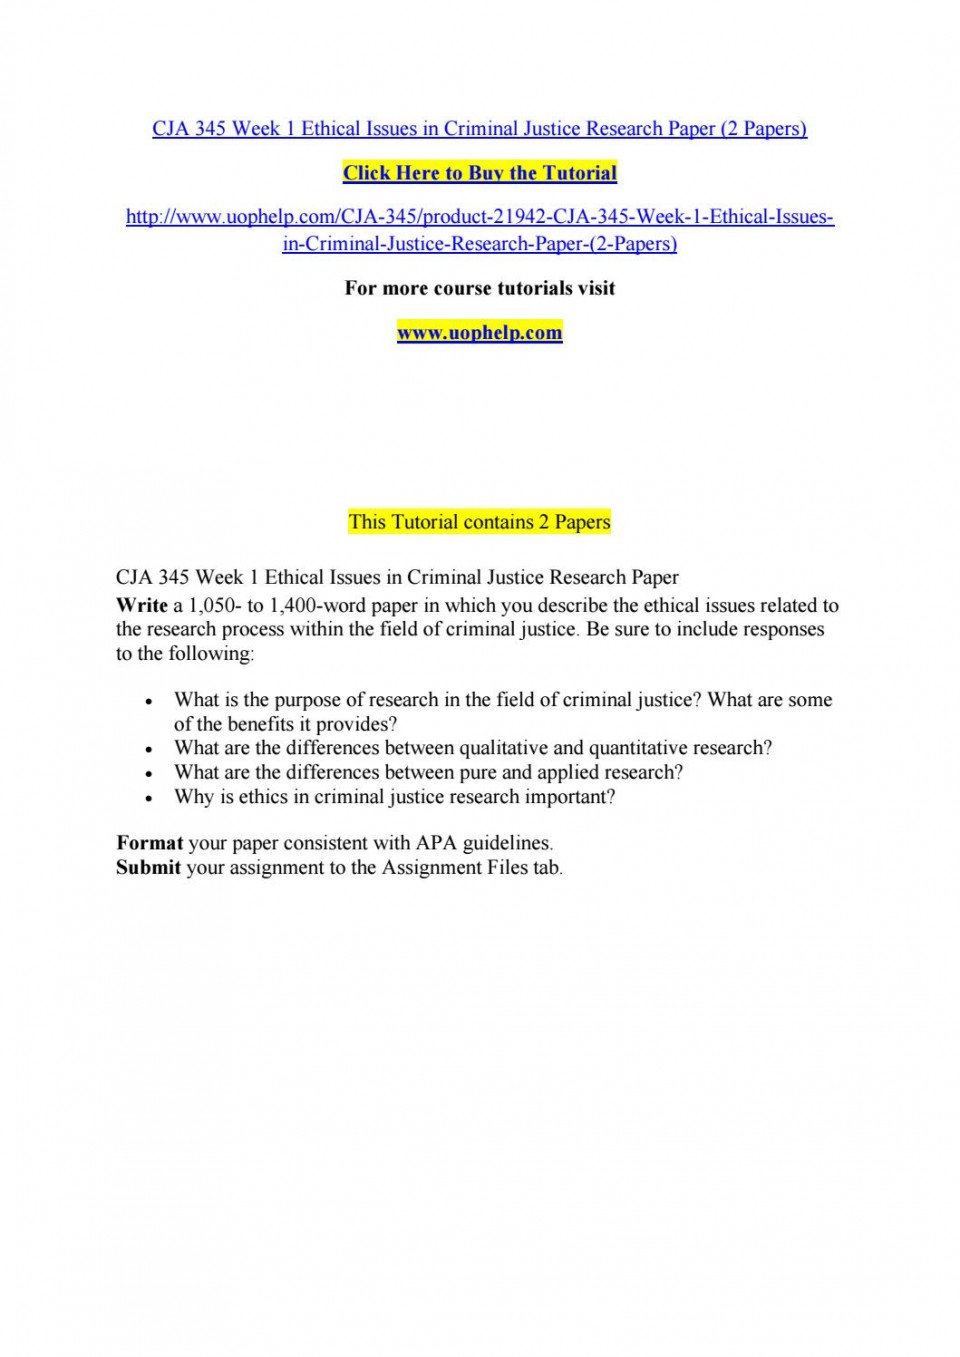 005 Research Paper Criminal Justice Papers Page 1 Formidable Free Sample 960